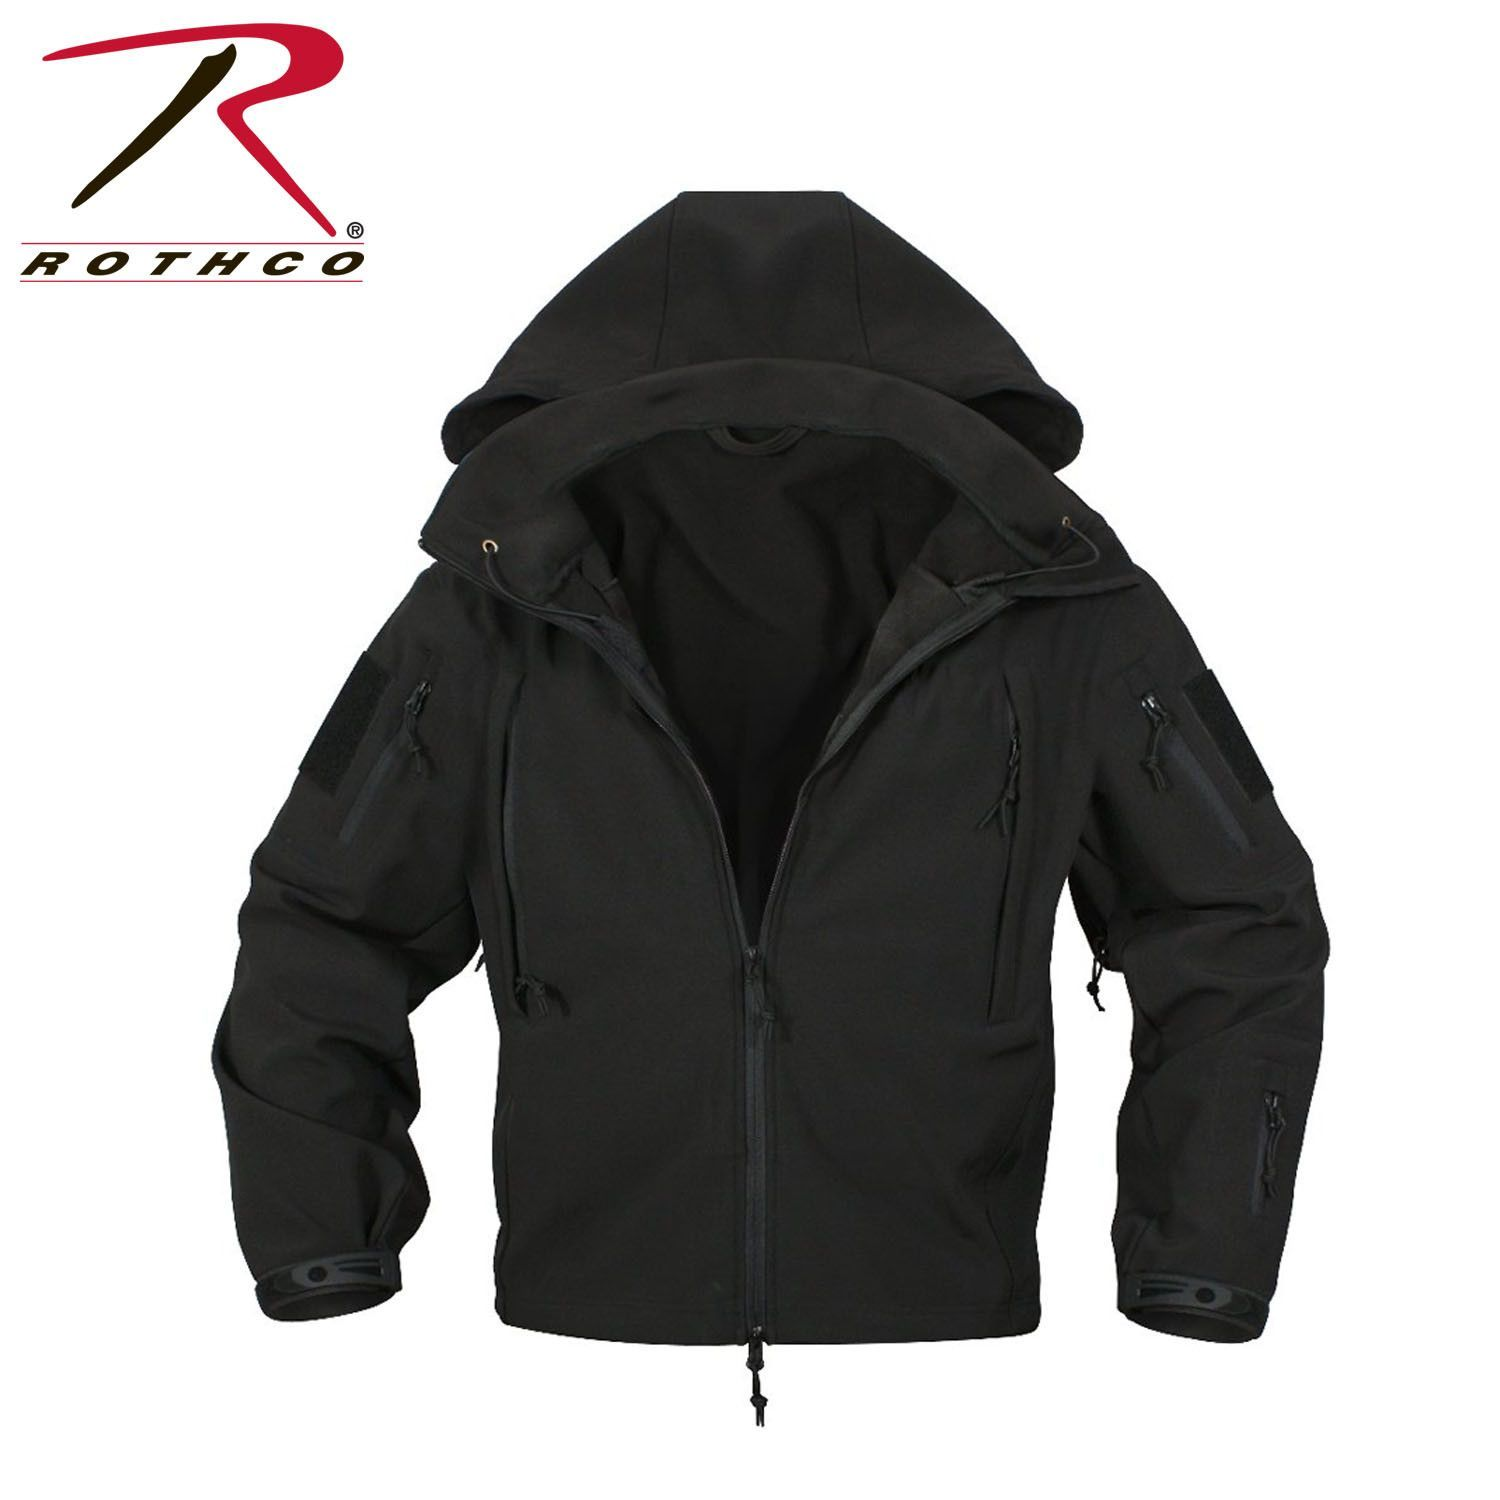 Rothco Special Ops Tactical Soft Shell Jacket  0835b9ece45